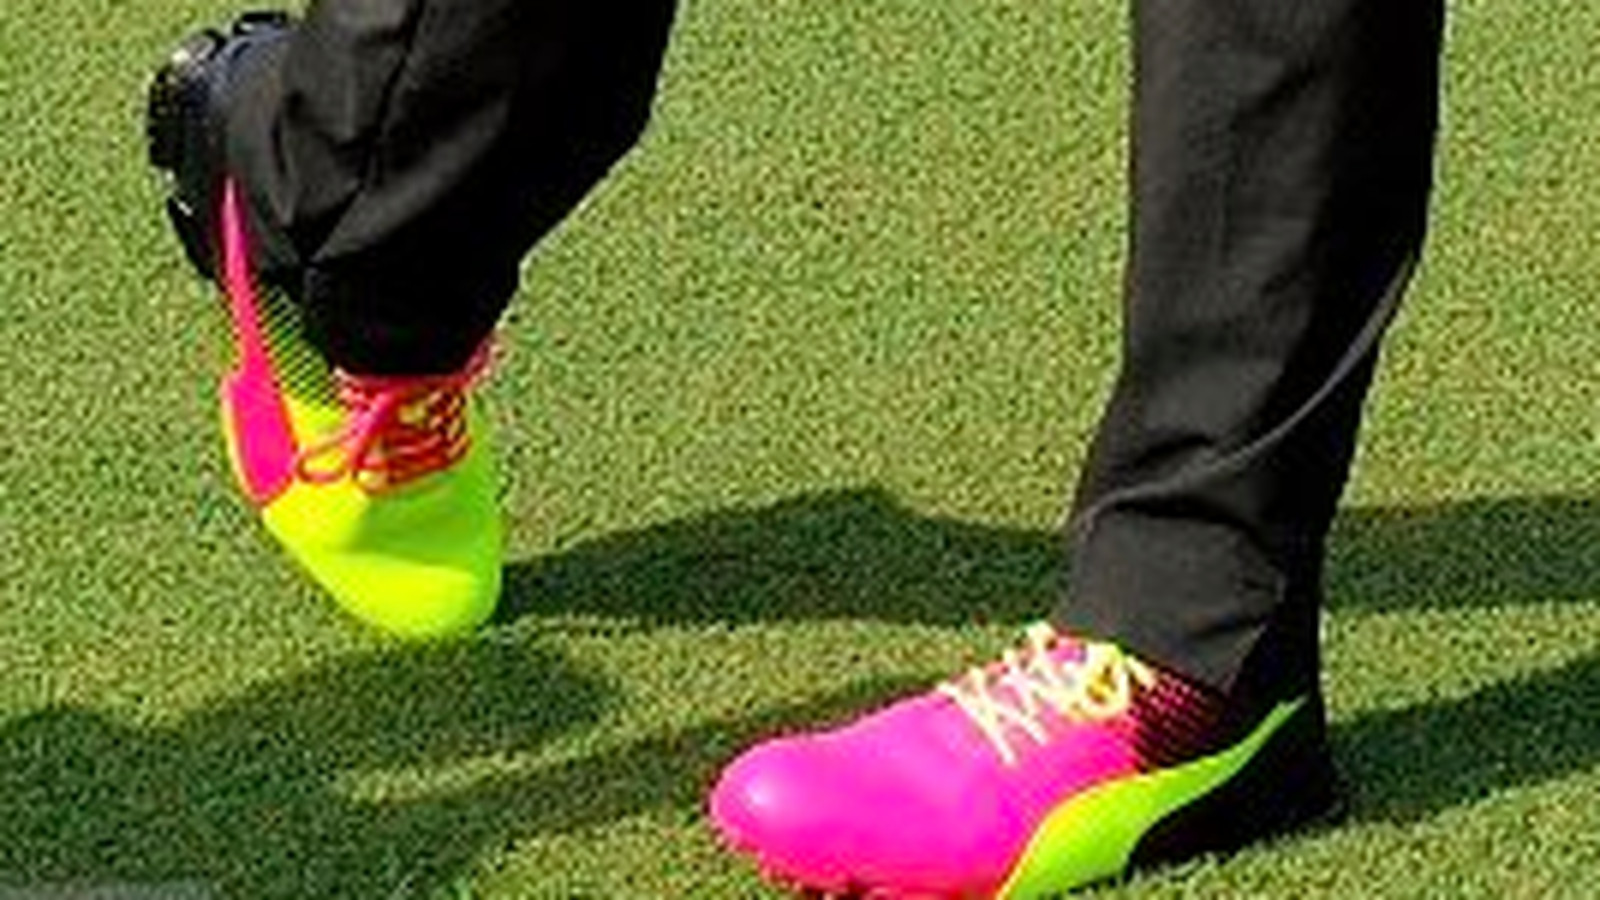 Rickie Fowler lights up The Players in mismatched neon shoes - SBNation.com